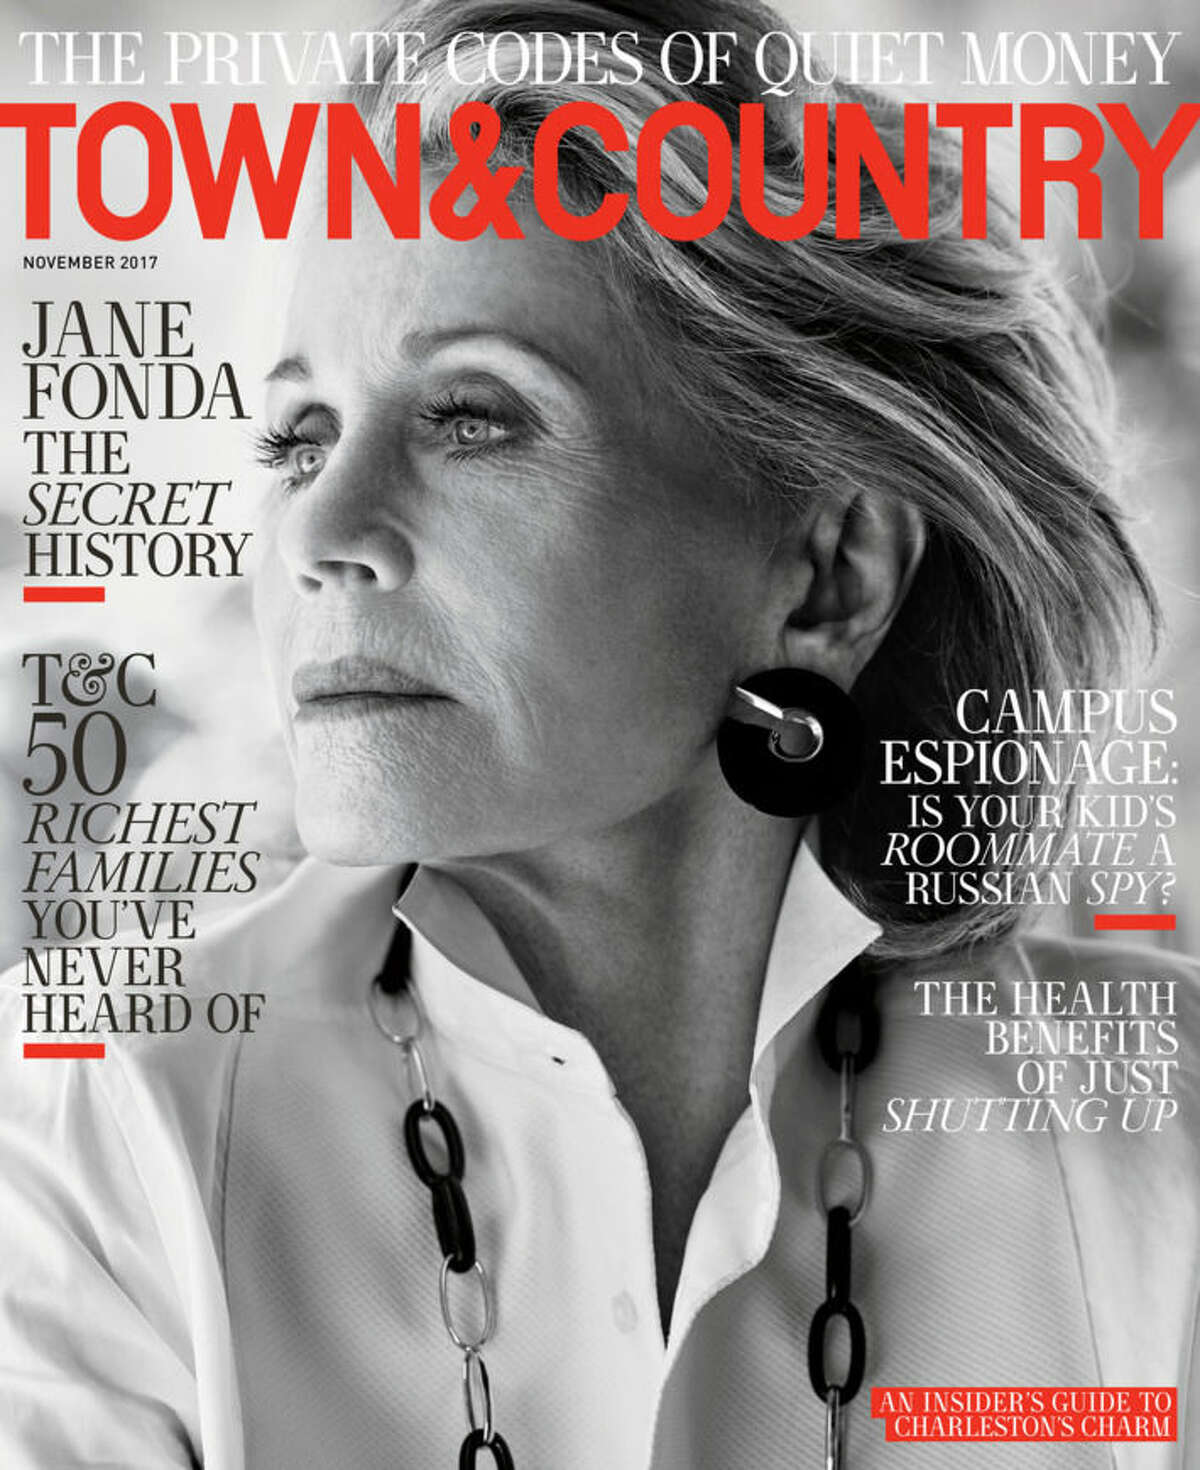 Jane Fonda on the cover of Town & Country magazine for November 2017.